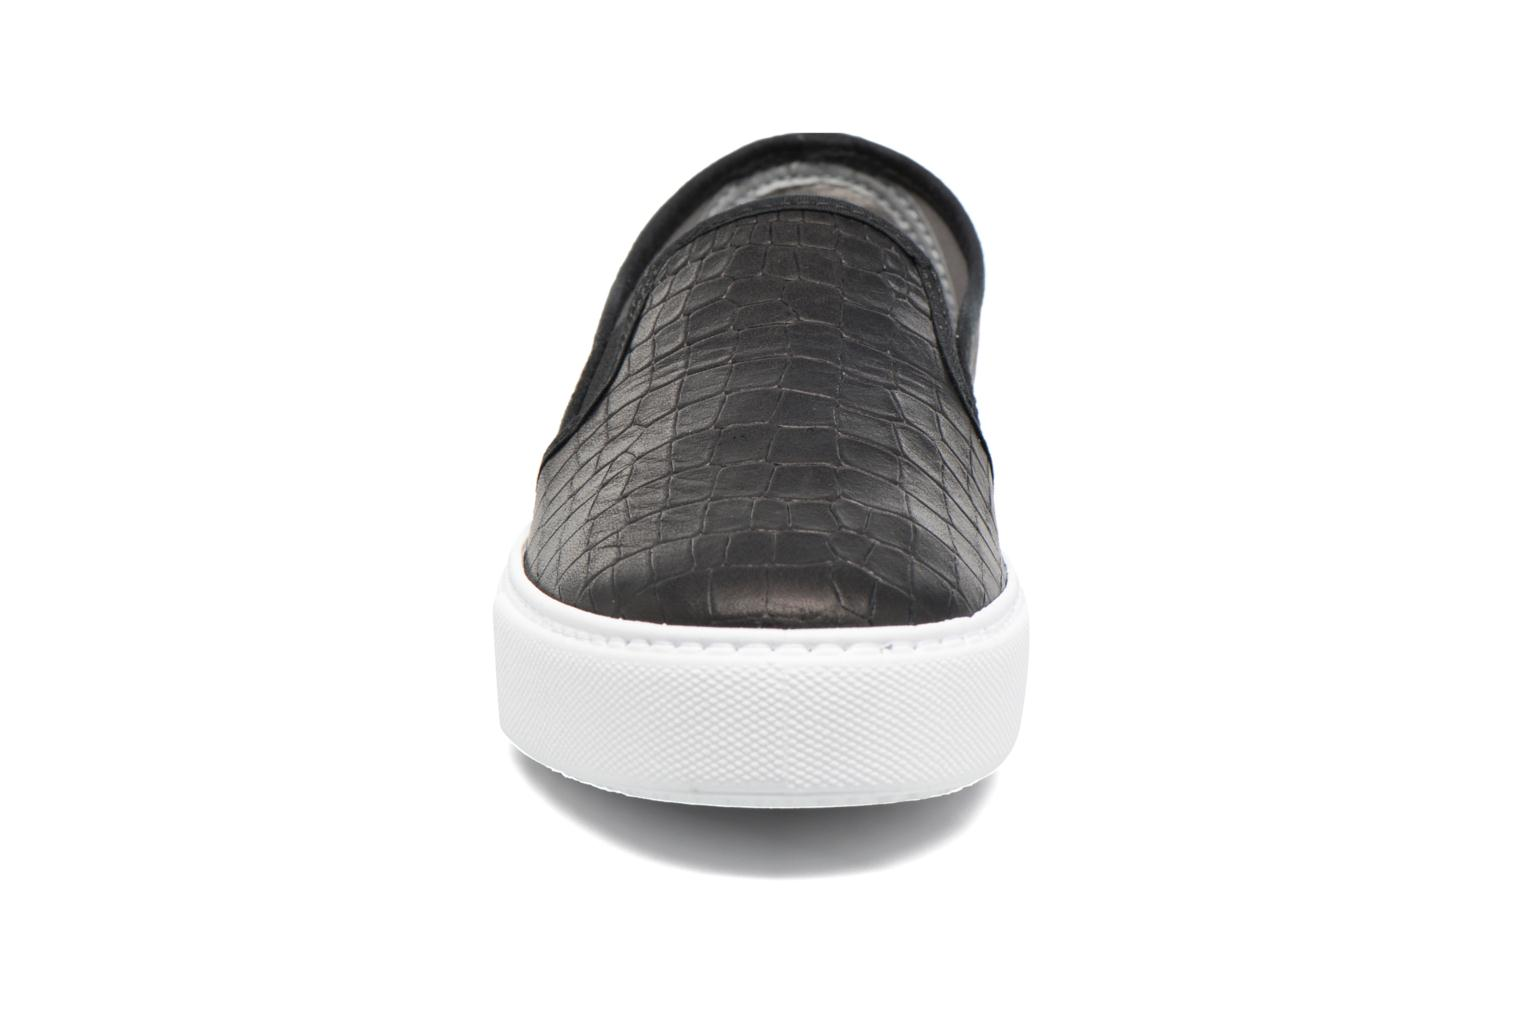 Slip On Lino Detalle Marron Croco negro